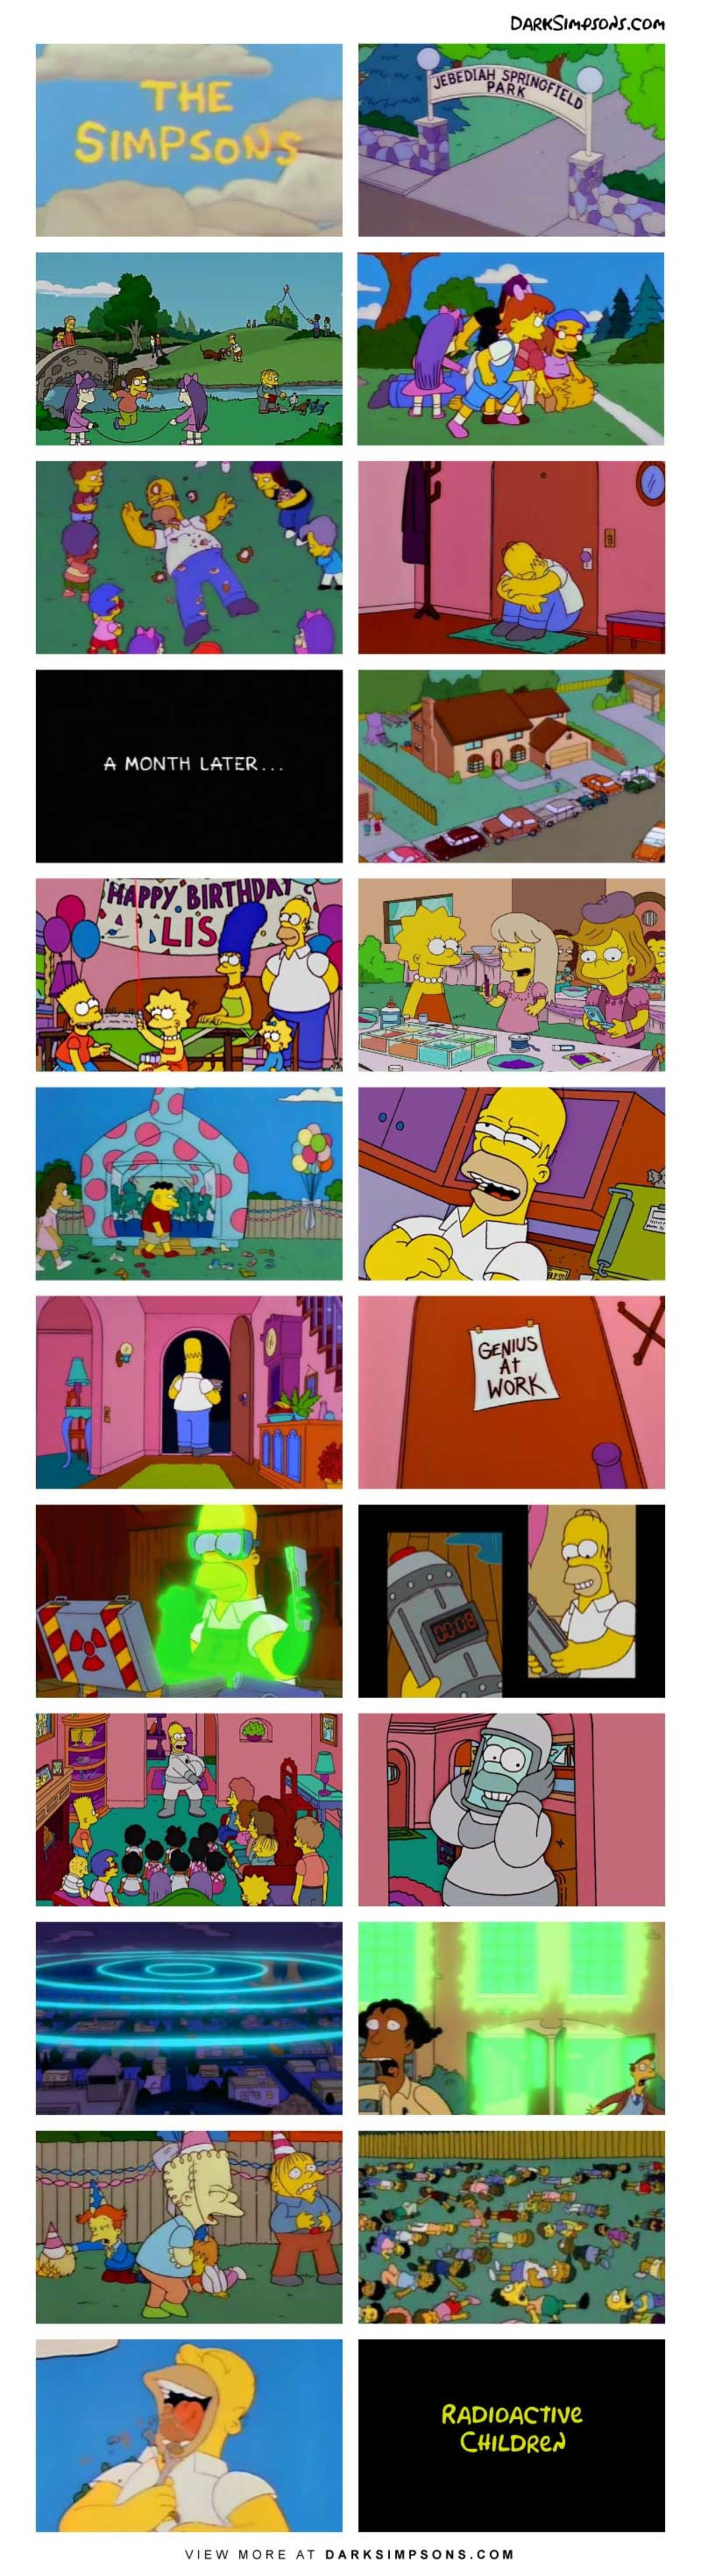 Homer: Rotten. Stinky. Hate world. Revenge soon. Take out on ever. . con A MONTH LATER RADIOACTIVE VIEW MORE AT . COM. Did he eat them?